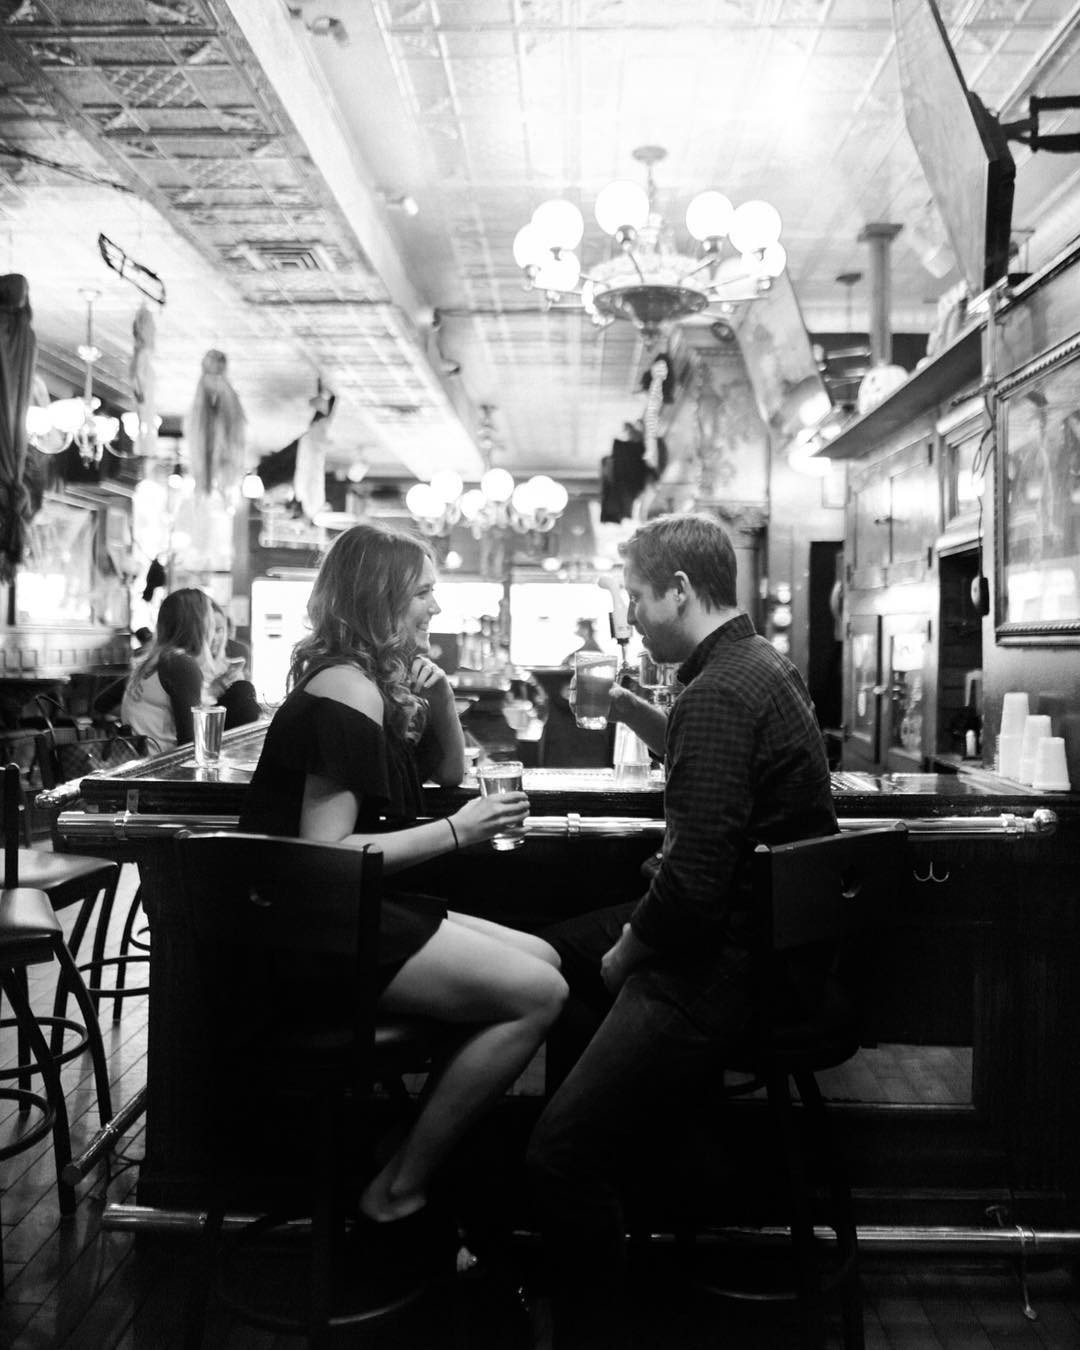 Engagement session in a local Chicago tavern